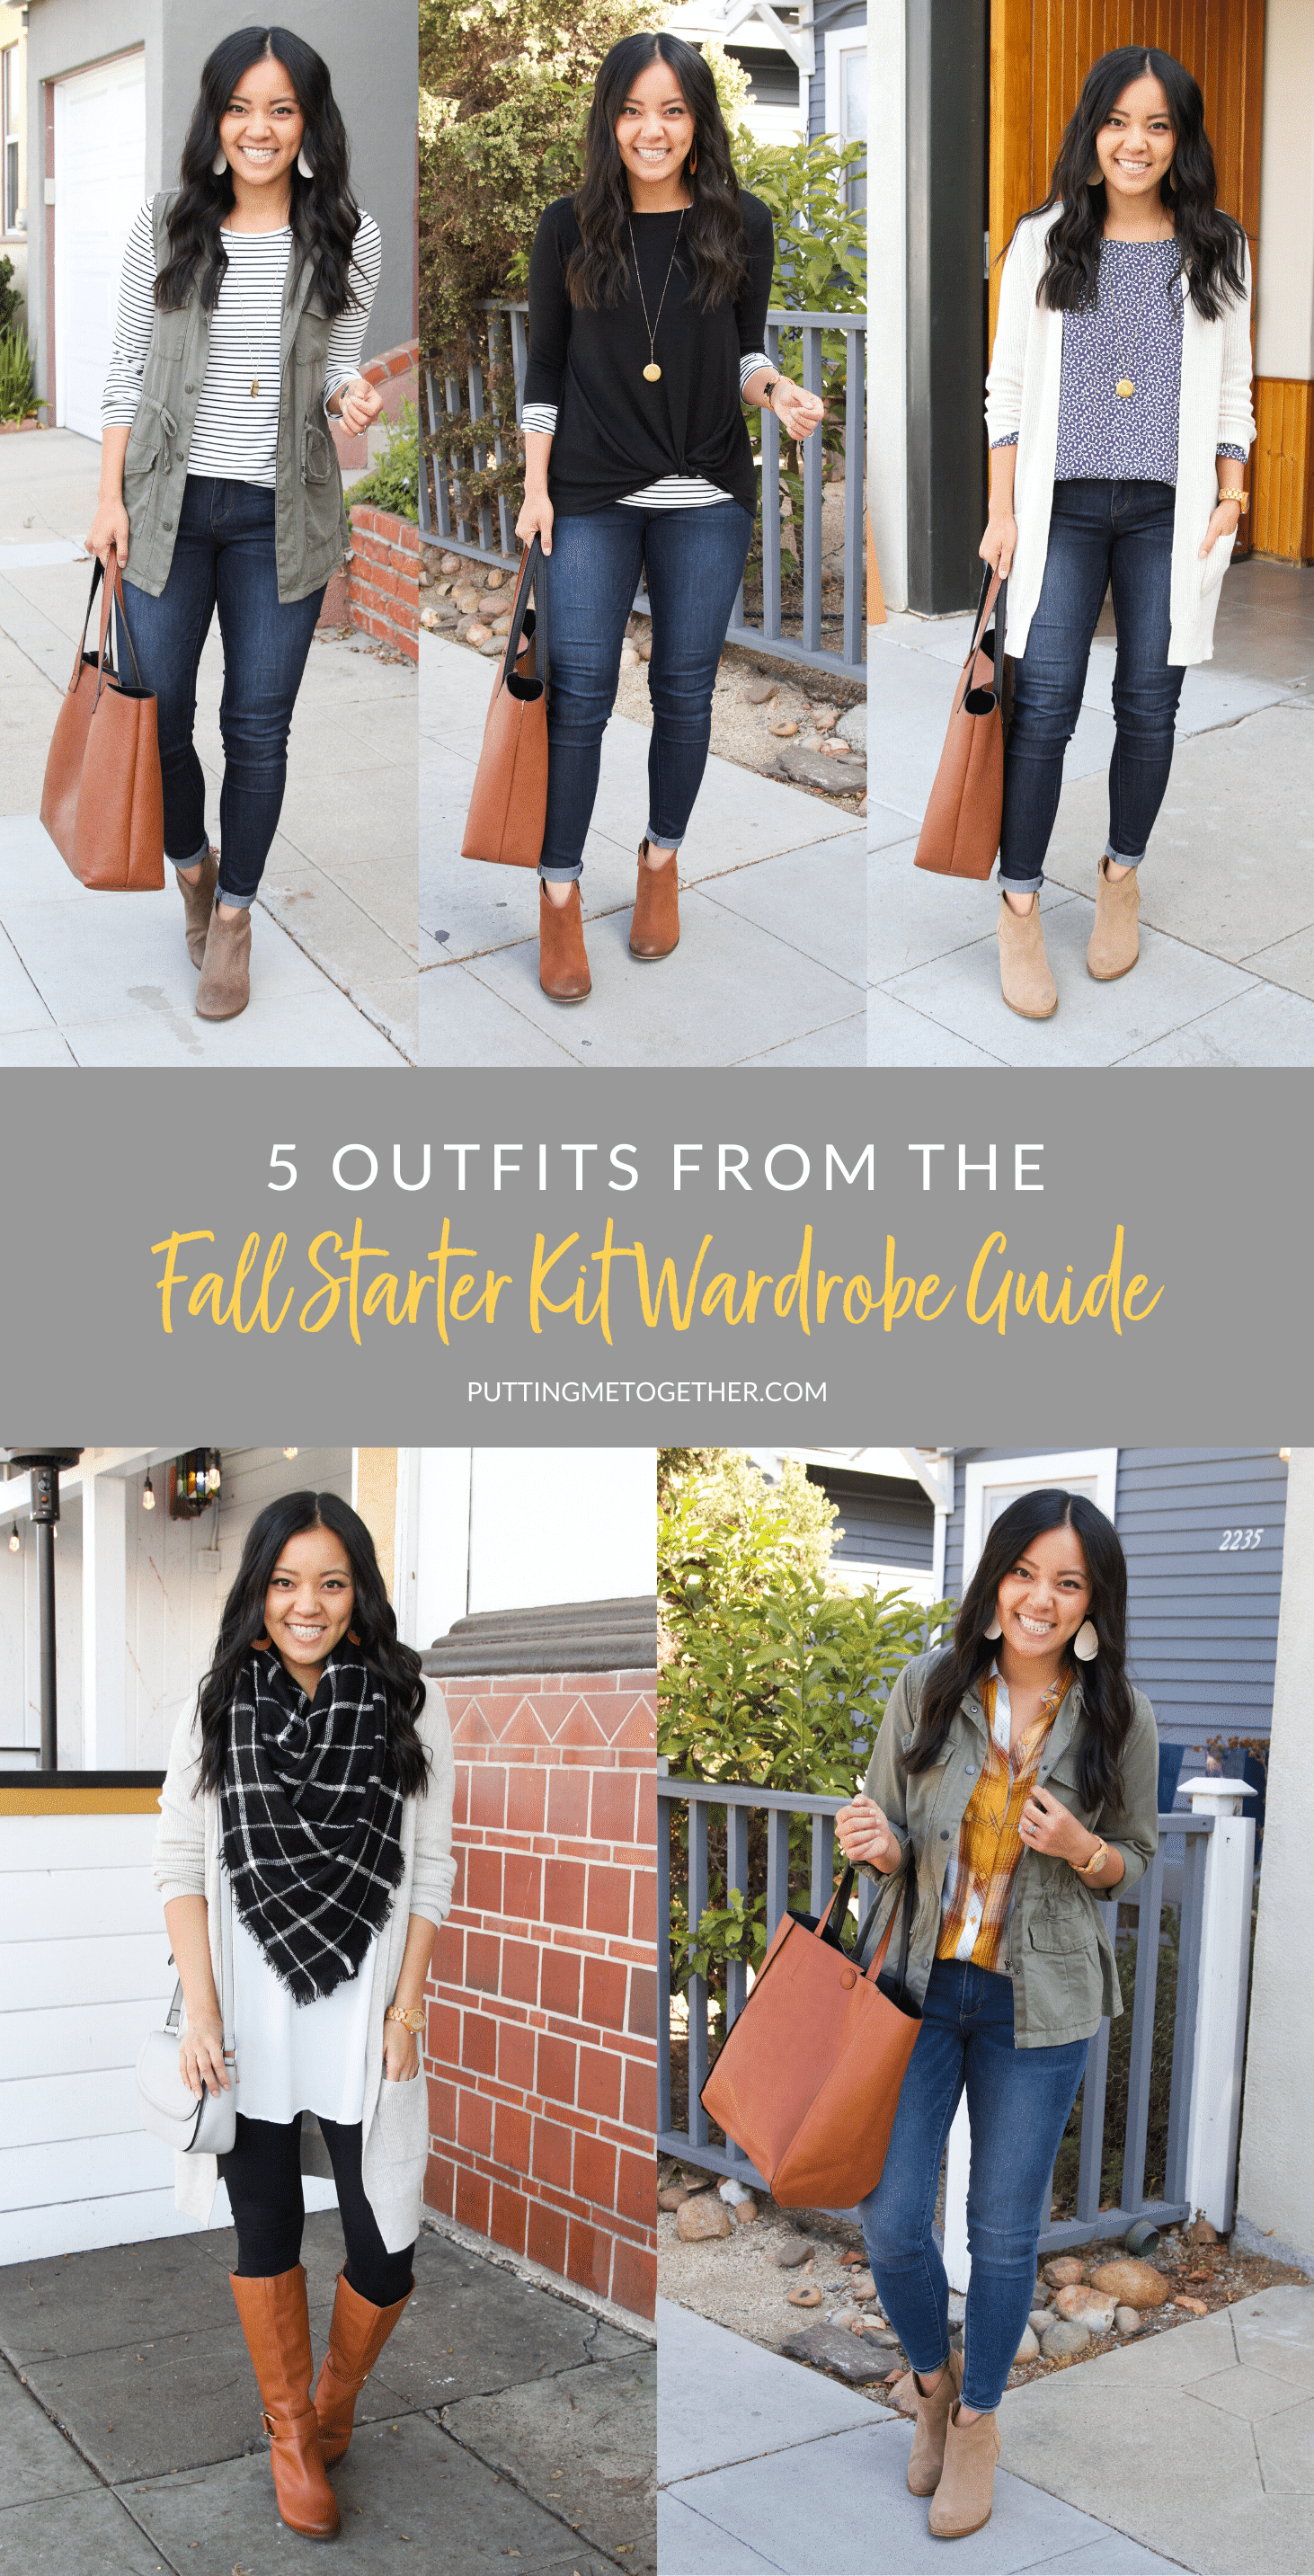 5 Outfits From the Fall Starter Kit Wardrobe Guide